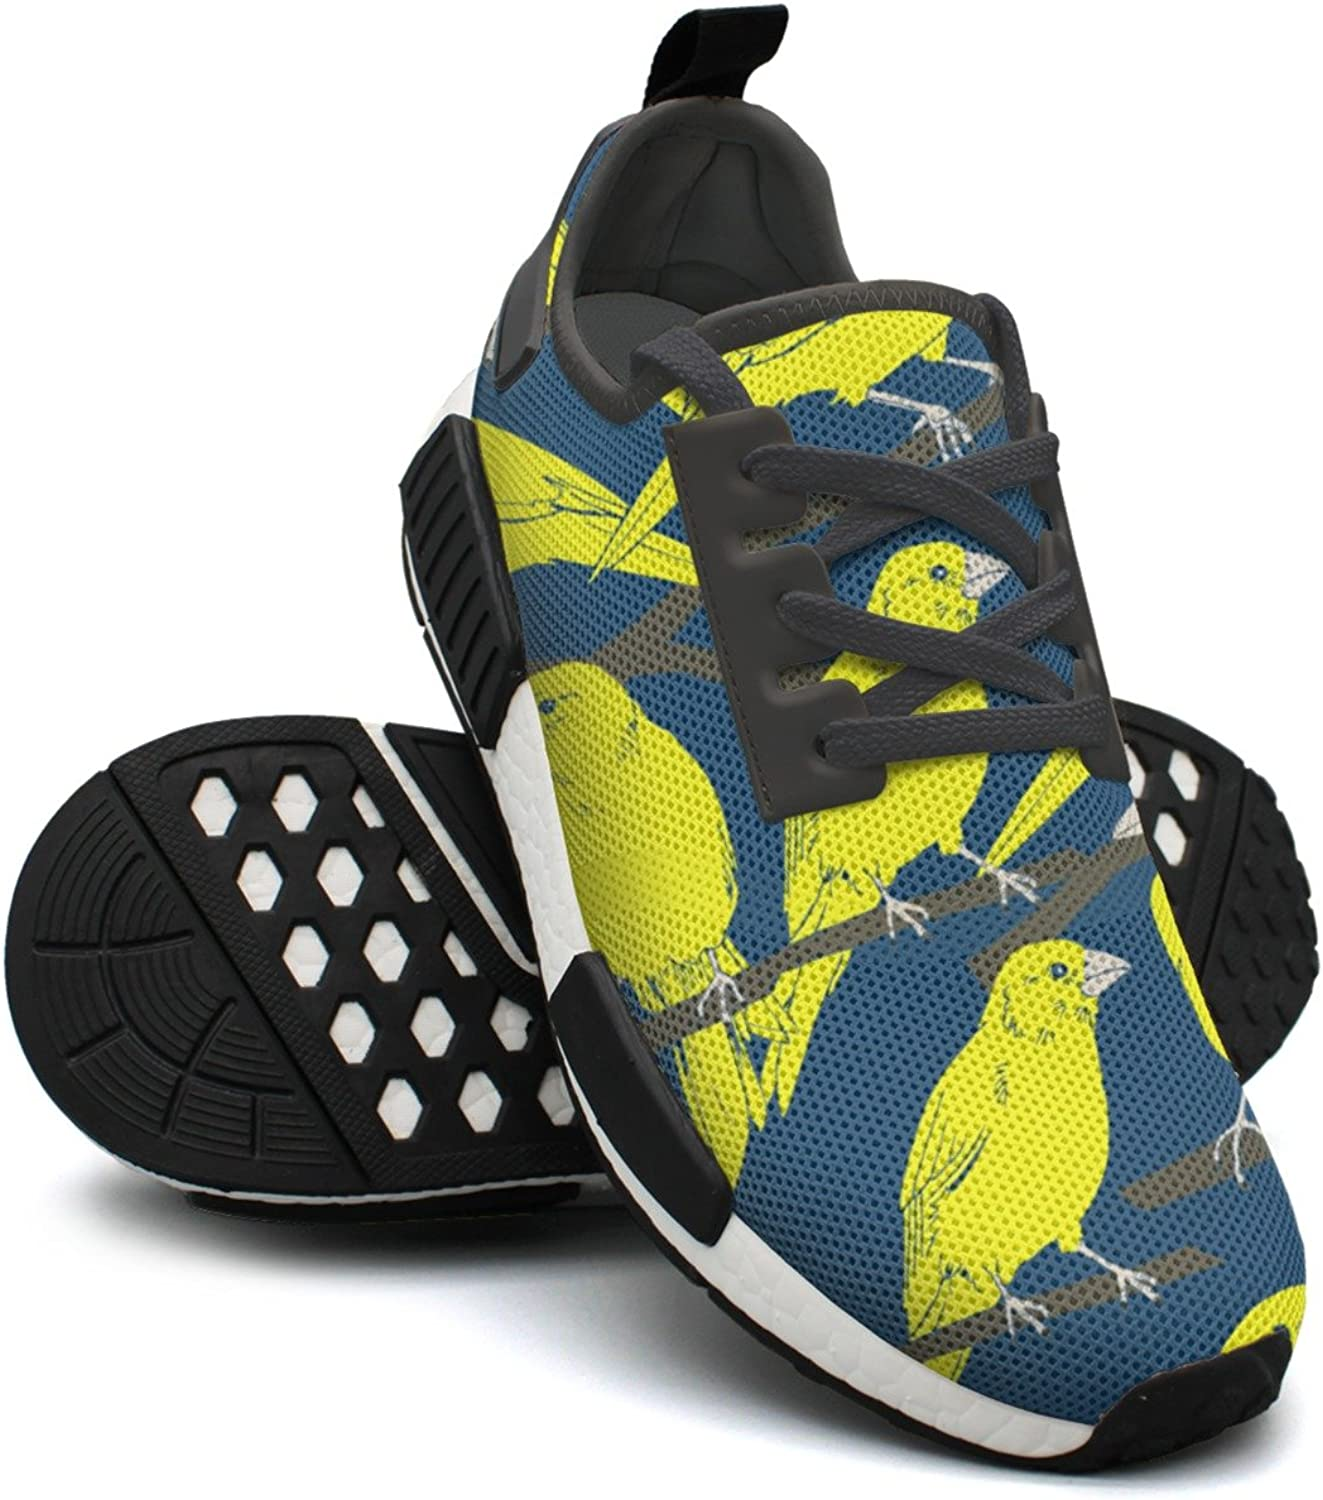 Yello and bluee Canaries Repeat Women's Funny Lightweight Sneaker Gym Outdoor Tennis shoes